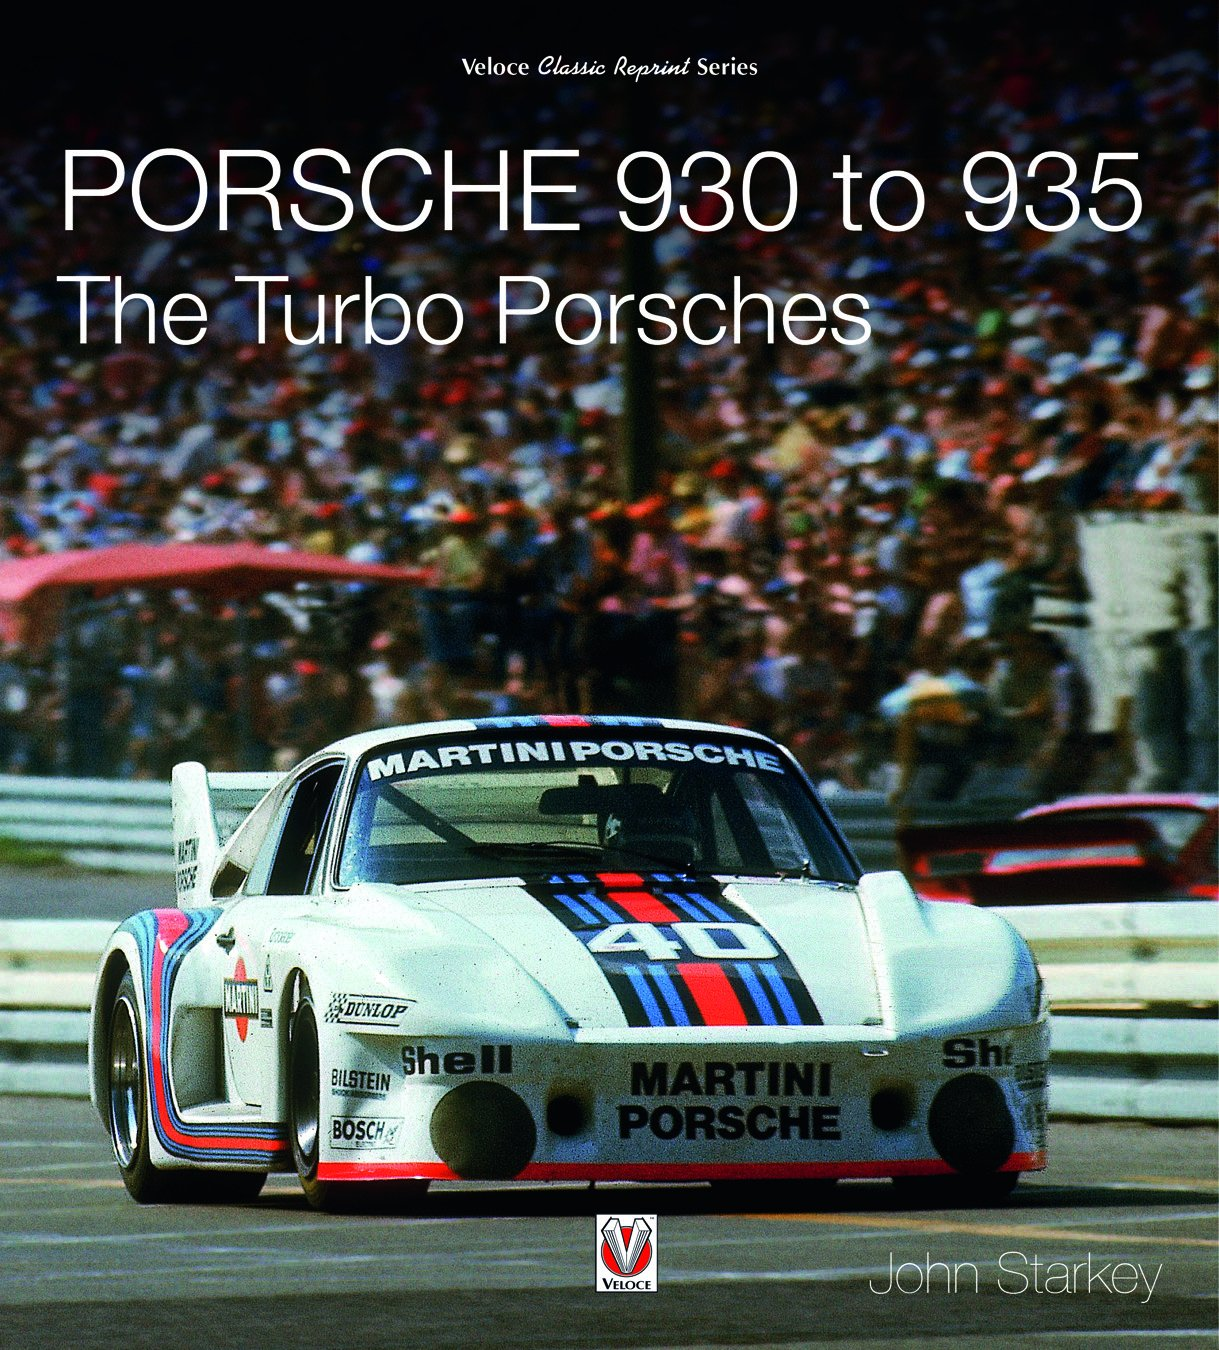 porsche-930-to-935-the-turbo-porsches